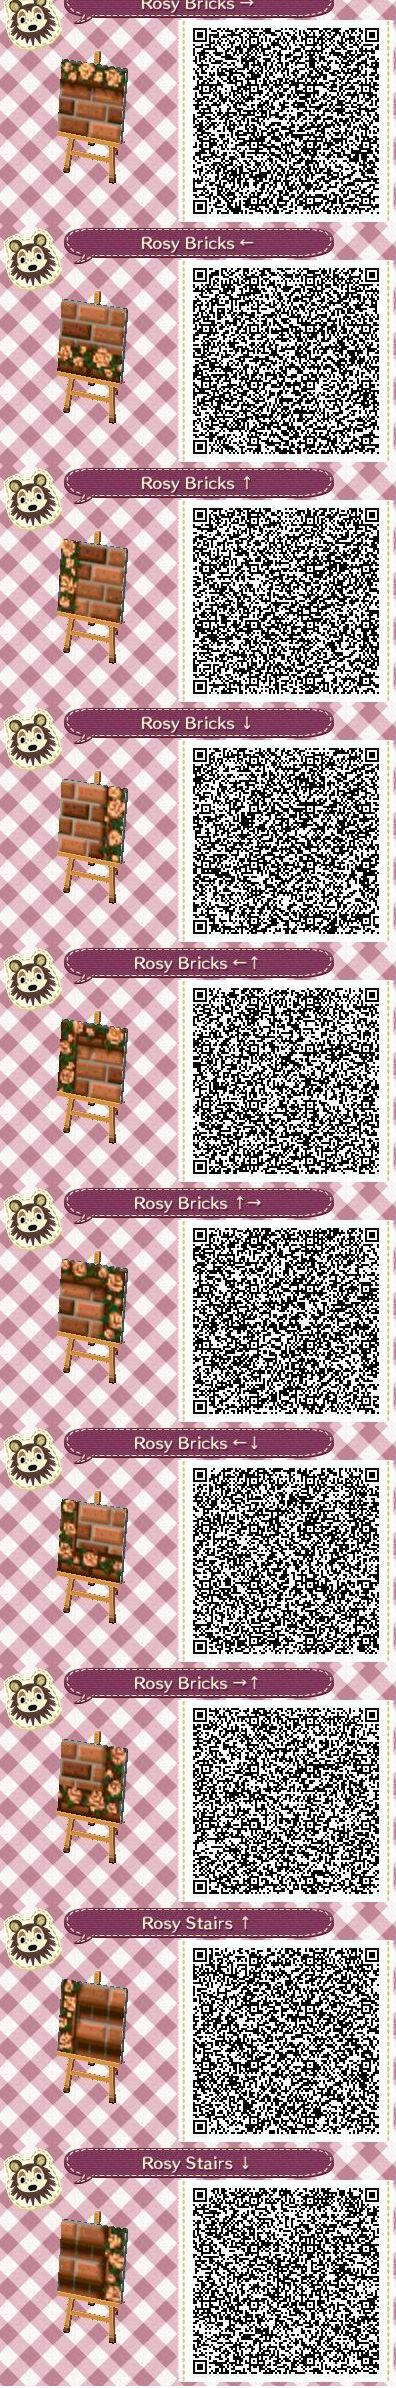 682 best images about animal crossing qr codes on for Carrelage kitsch animal crossing new leaf